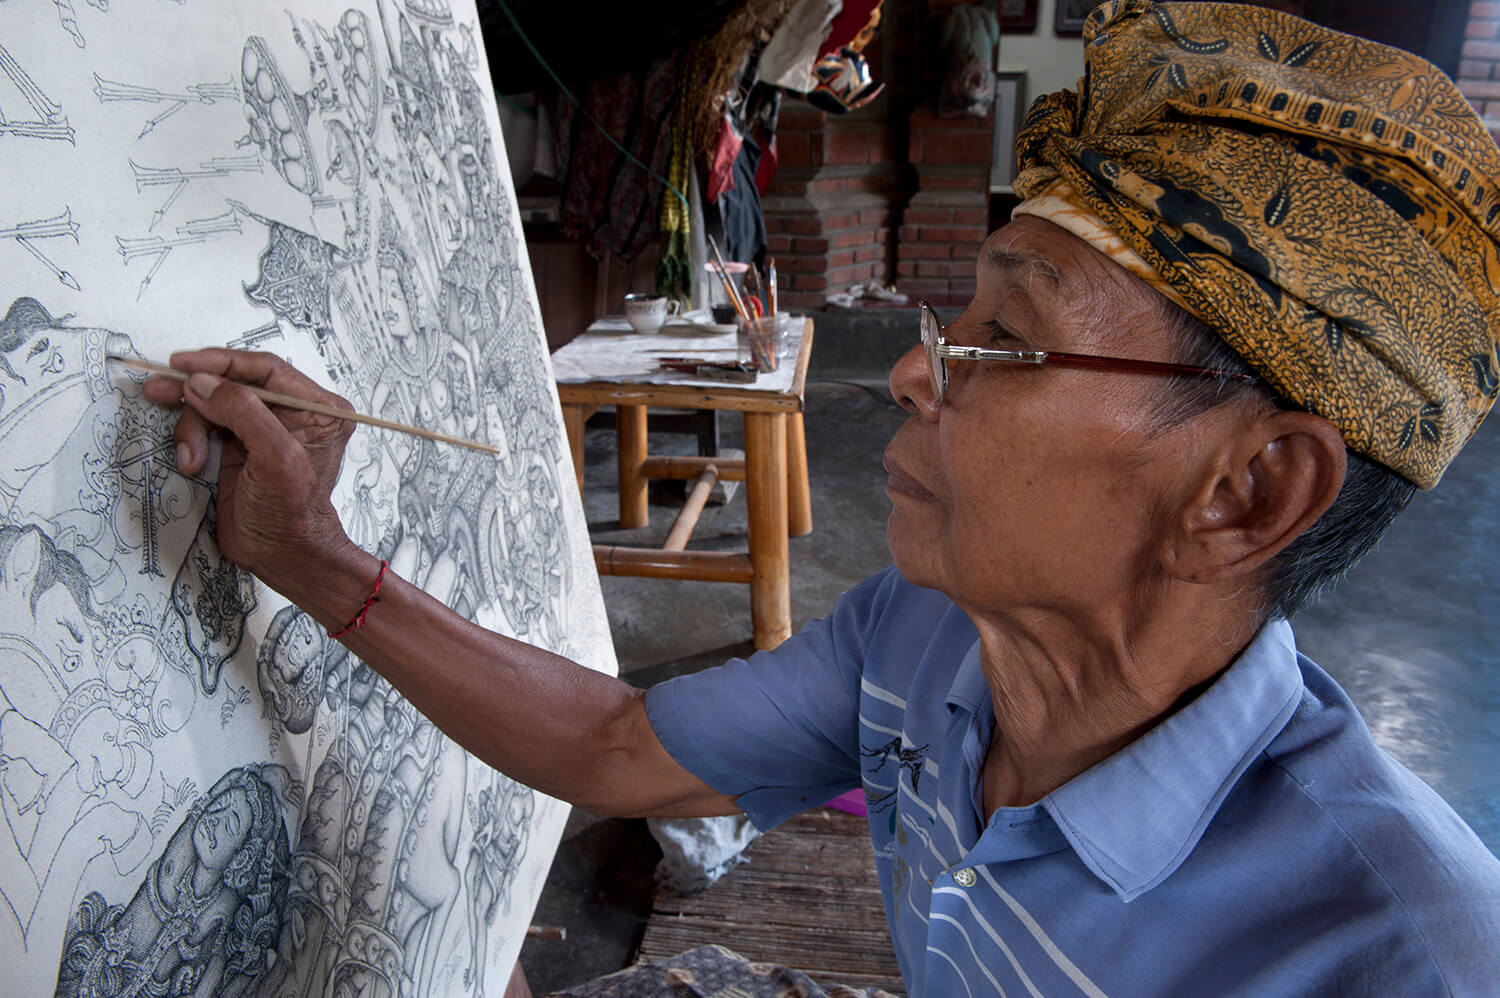 Ketut Madra in April 2013 inking a detail of a Mahabharata painting